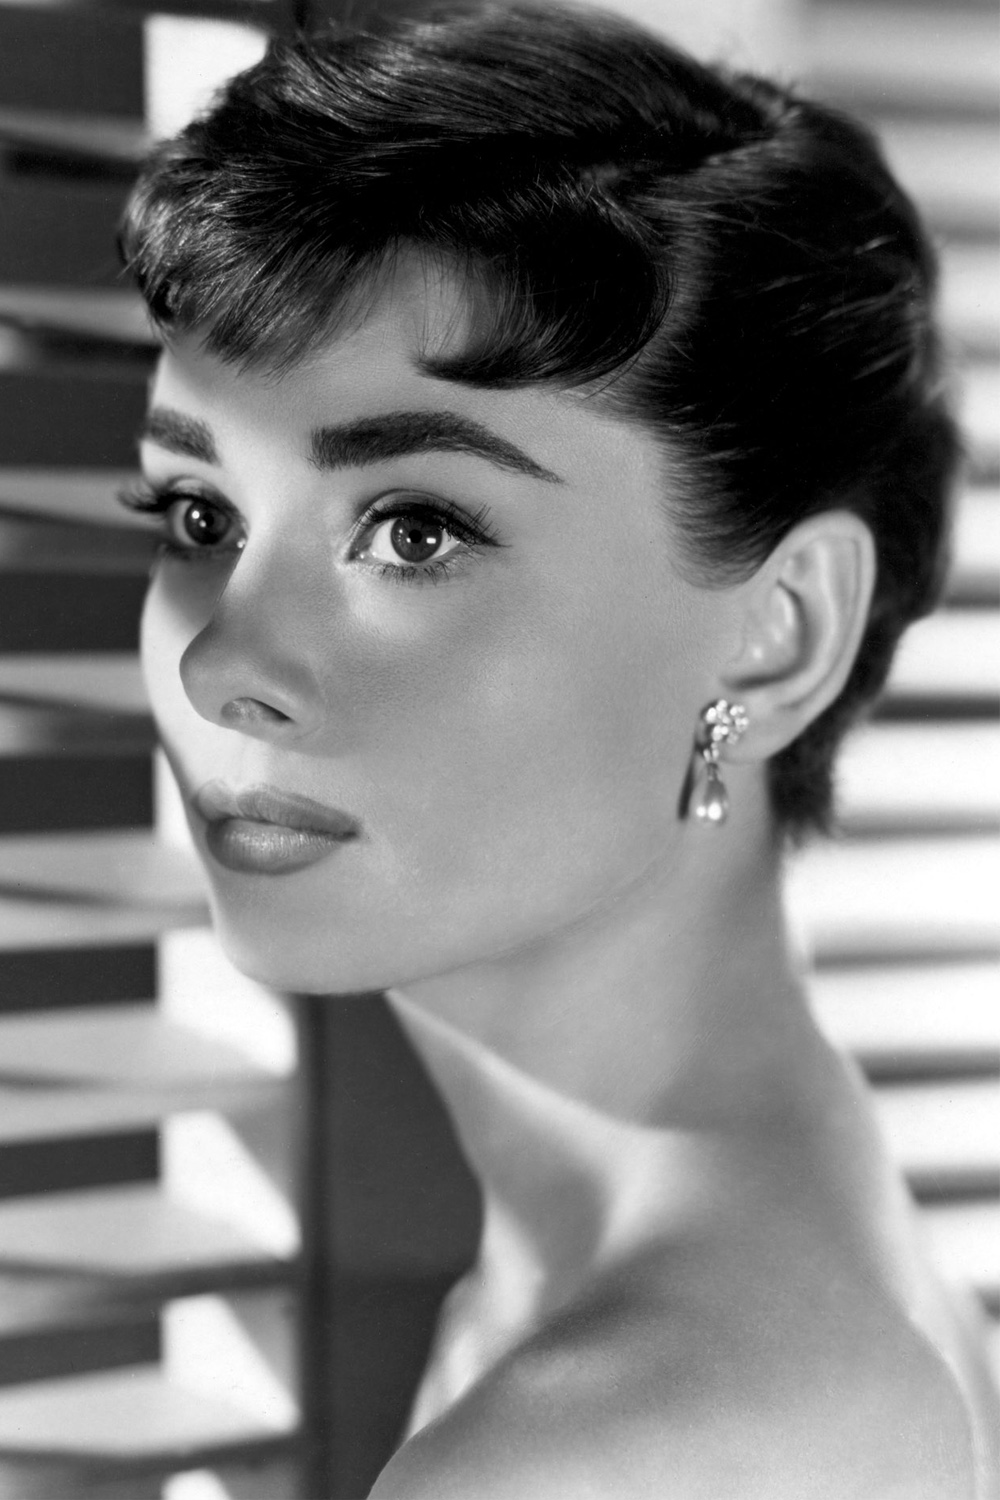 Audrey Hepburn Hair Styles Audrey Hepburn's Best Hairstyles From Breakfast At Tiffany's To .